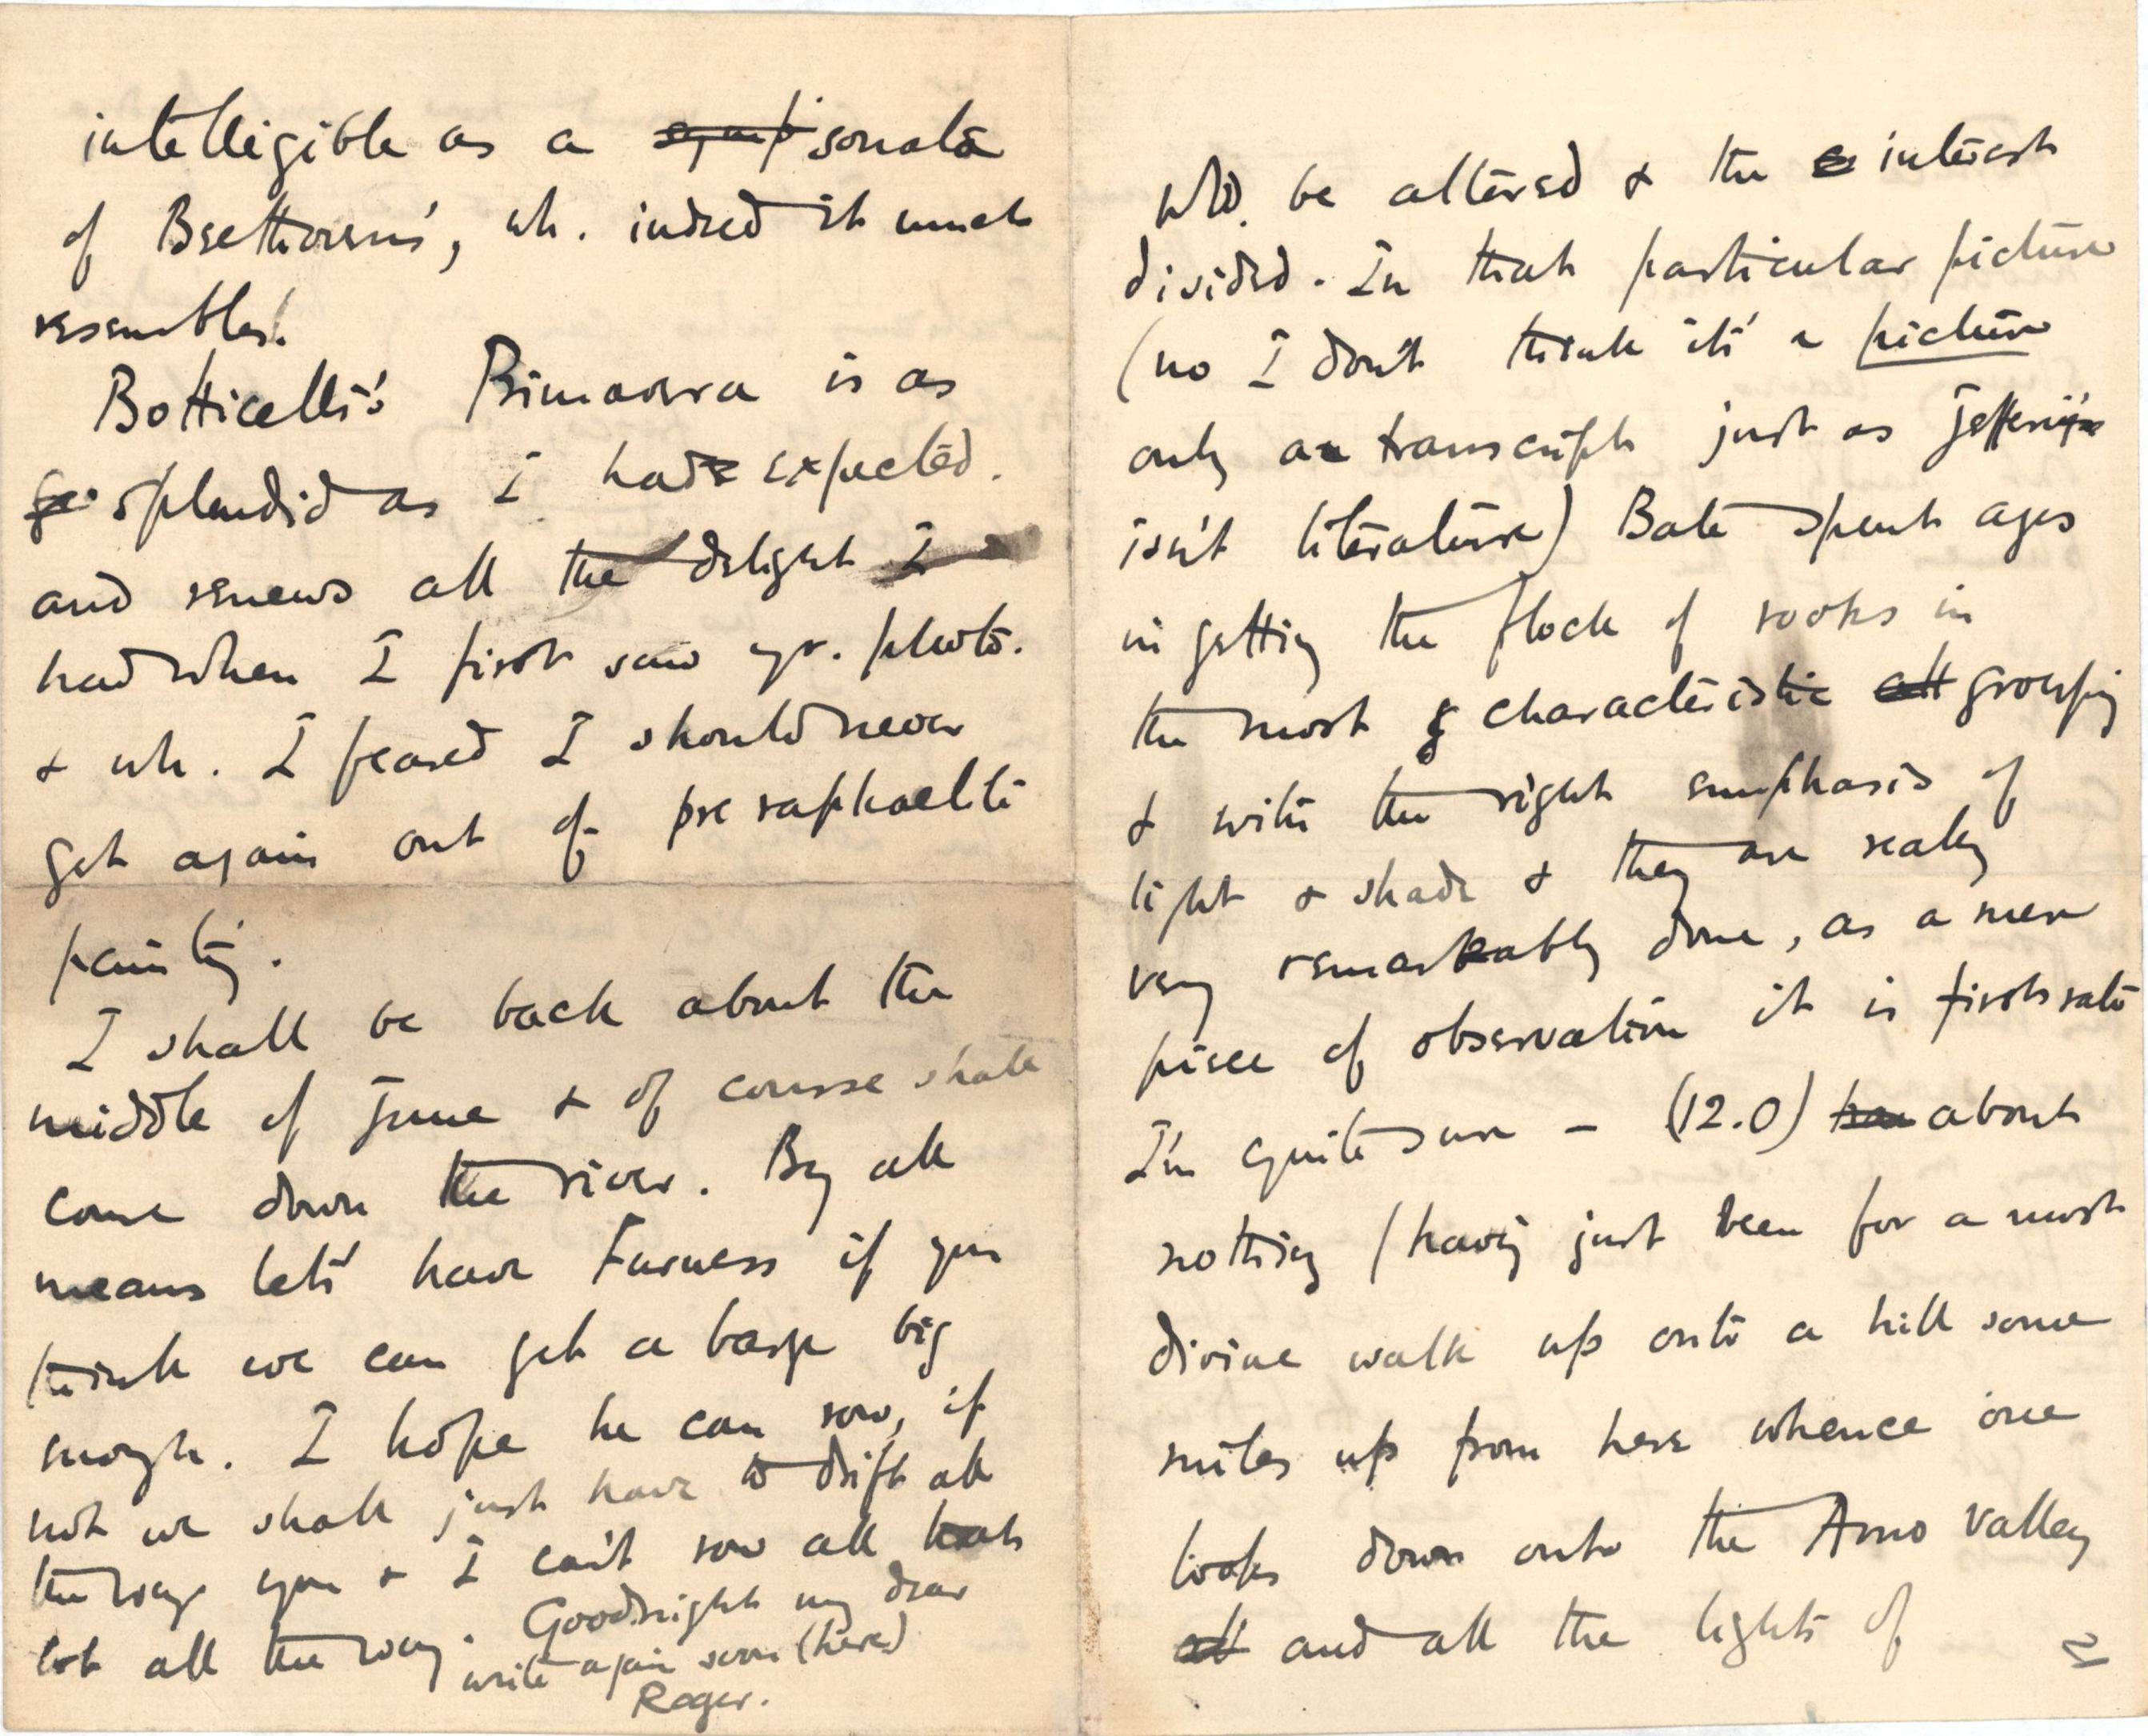 Fourth page of a letter from Roger Fry to Dickinson, 21 April 1891, regarding Florence. [REF/3/46/3]